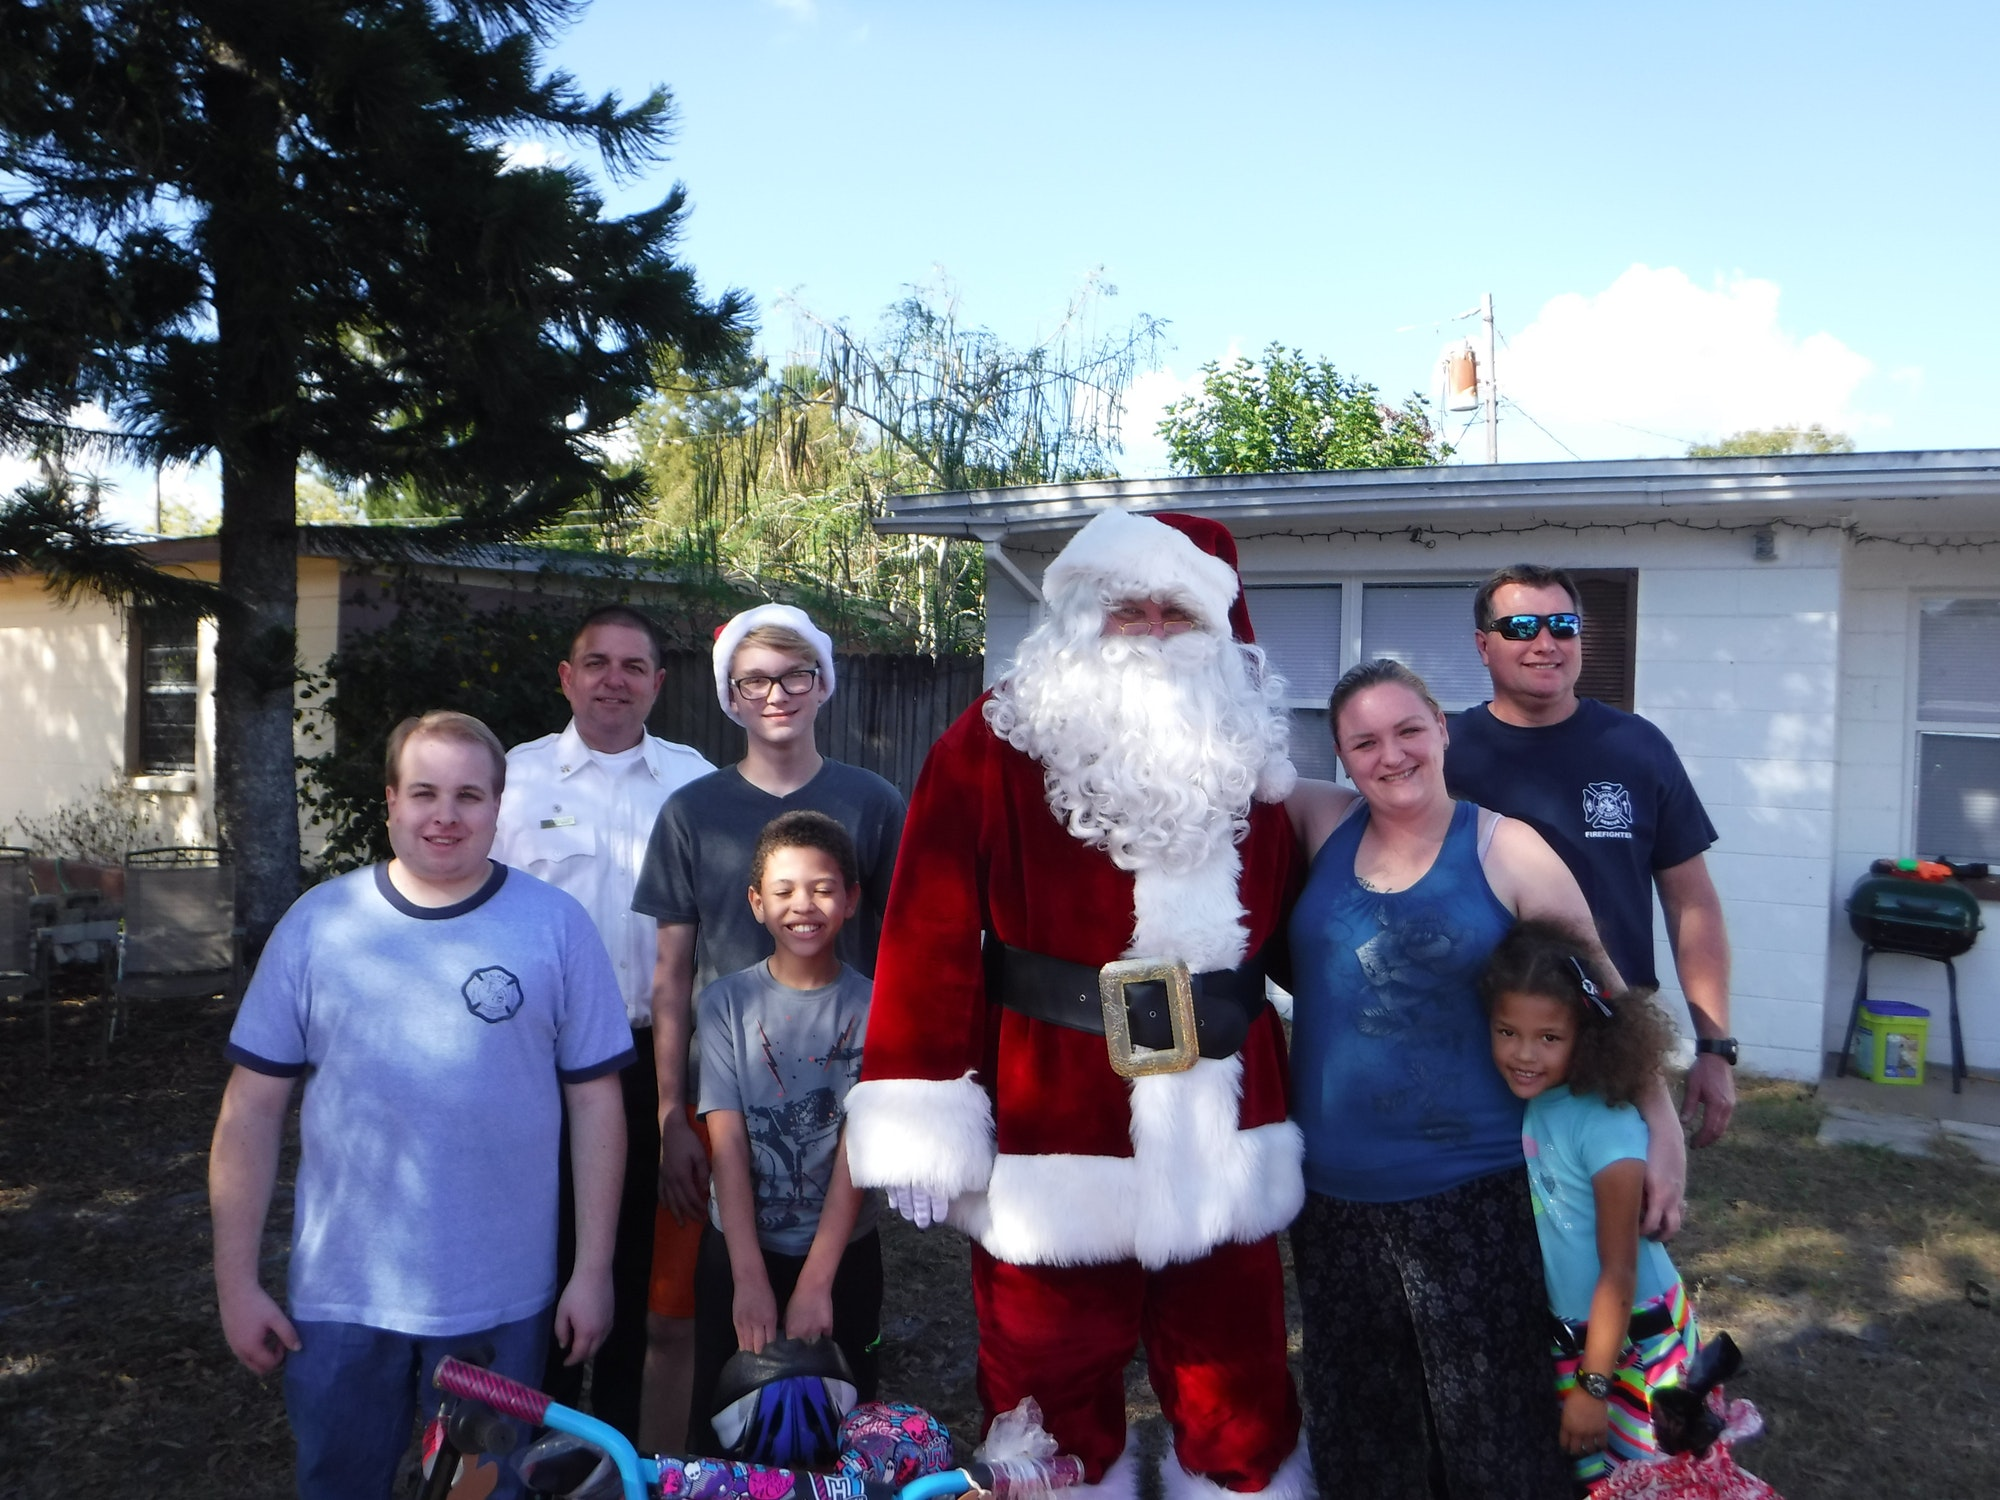 Christmas Picture with Santa and Children